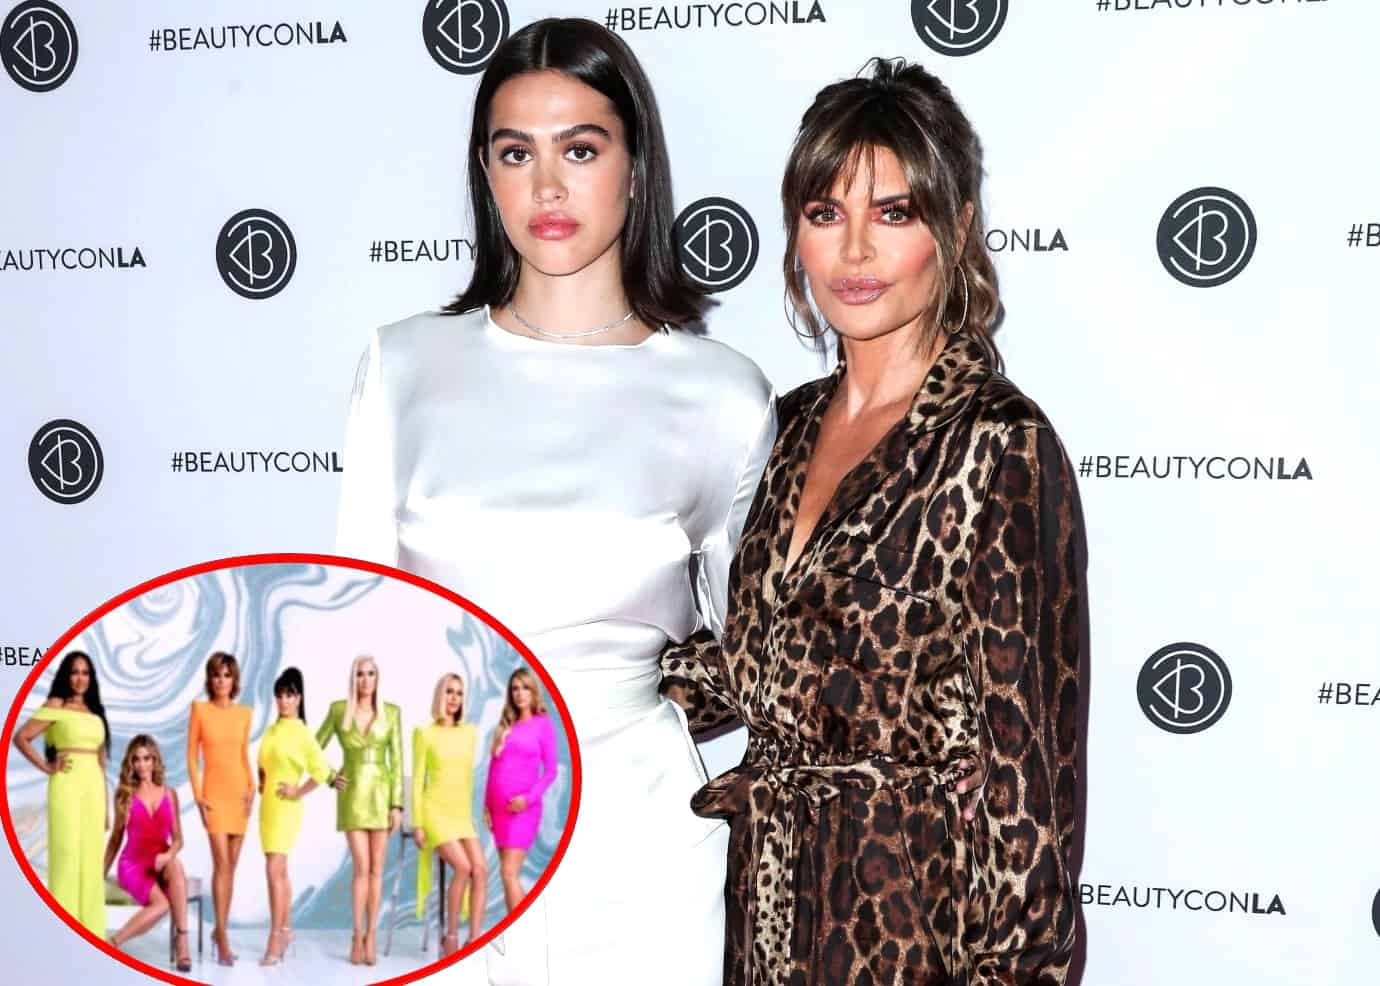 """Amelia Hamlin Speaks Out About RHOBH Backlash and Shares How She Feels About Mom Lisa's Dancing Videos, Plus How Her Family Has No """"Lawsuits"""" or """"Secrets"""" to Hide"""